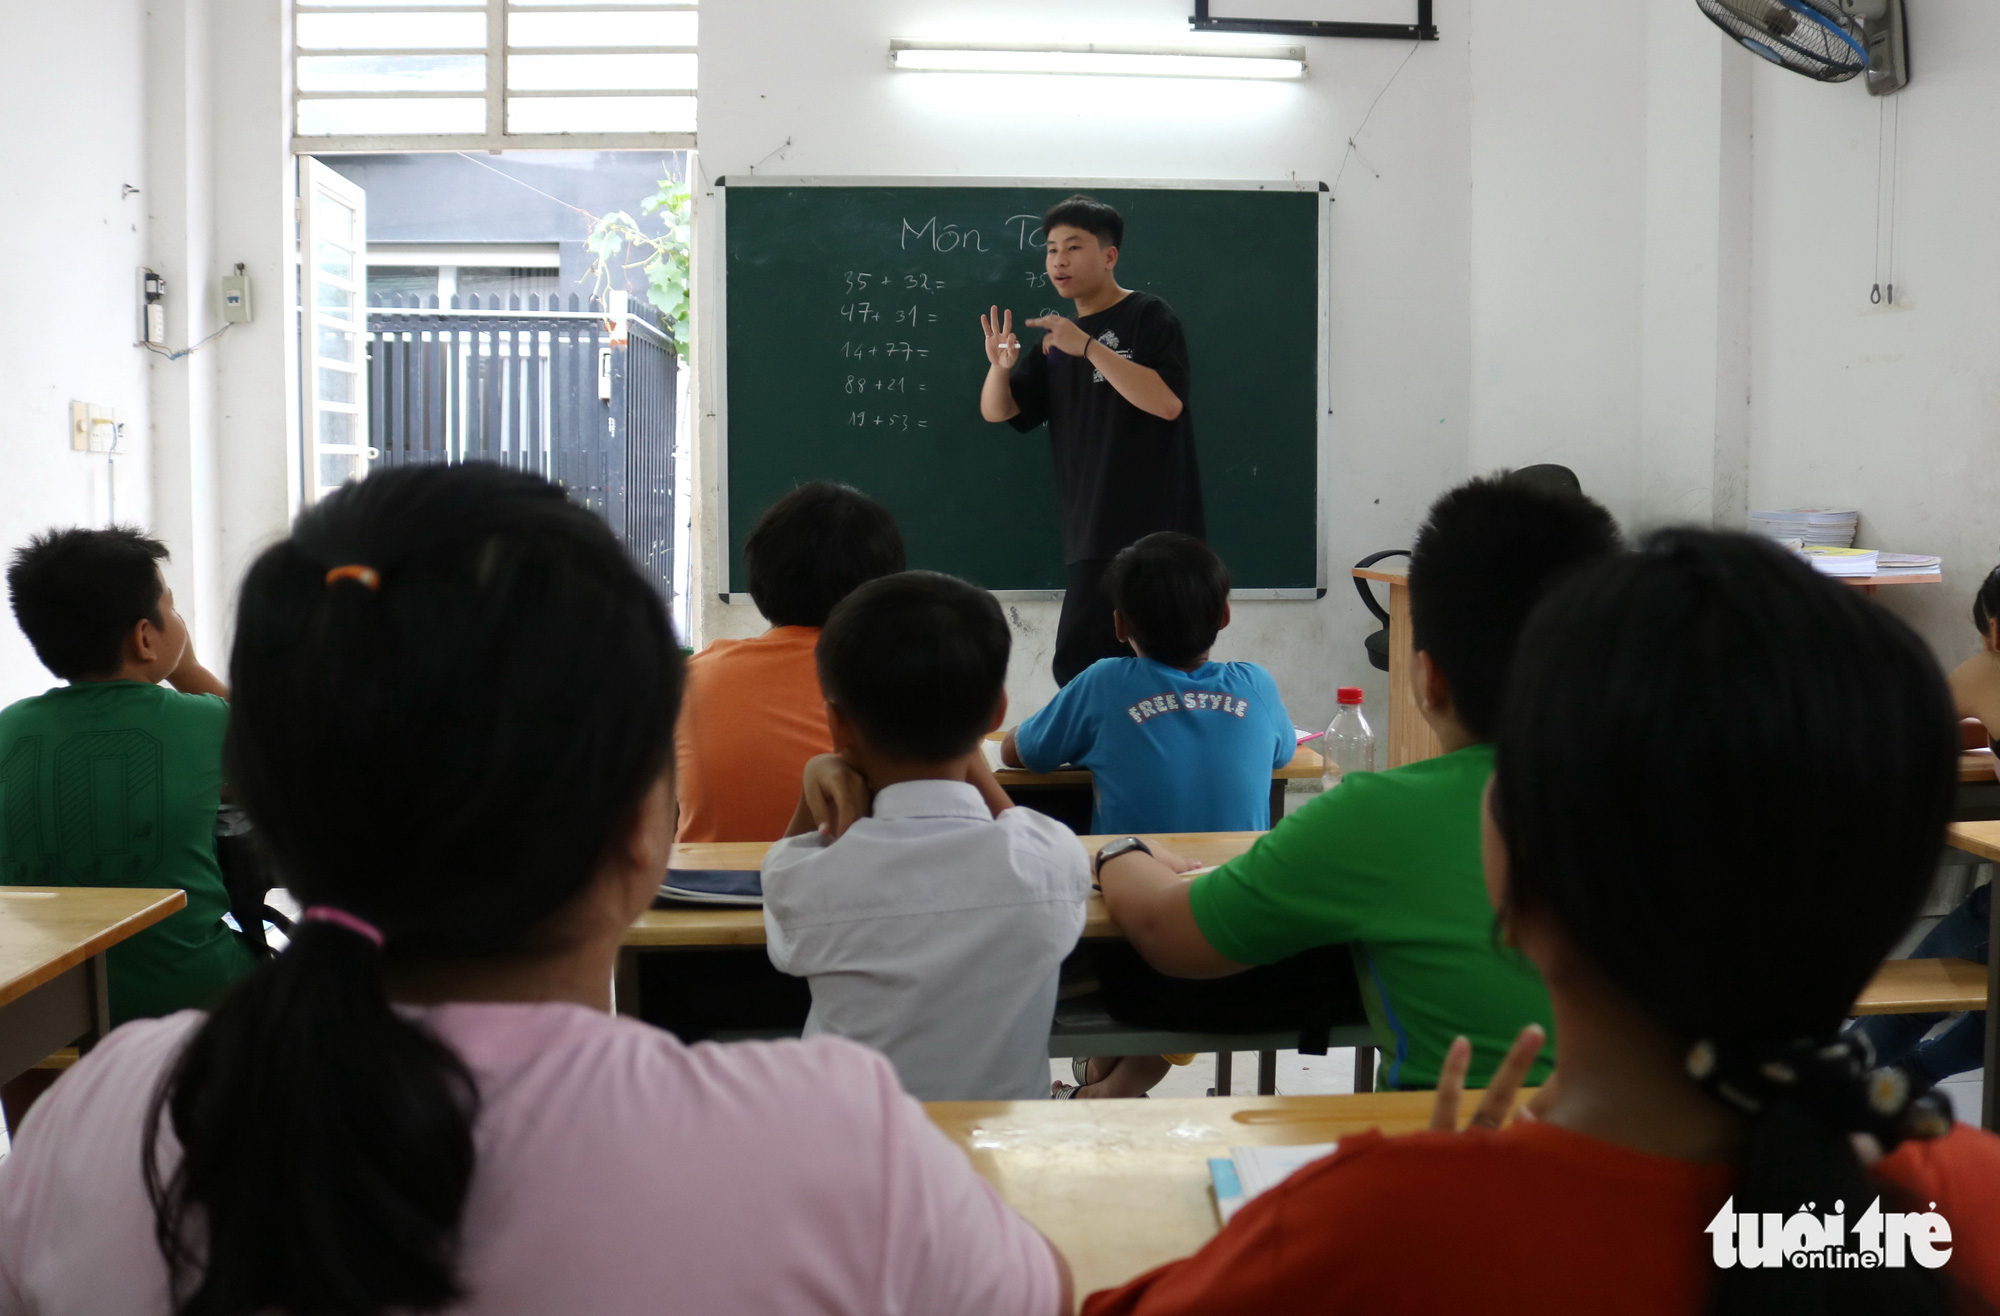 Phan Trung Hai teaches Math in this special class for underprivileged children in Ho Chi Minh City, Vietnam. Photo: Ngoc Phuong / Tuoi Tre